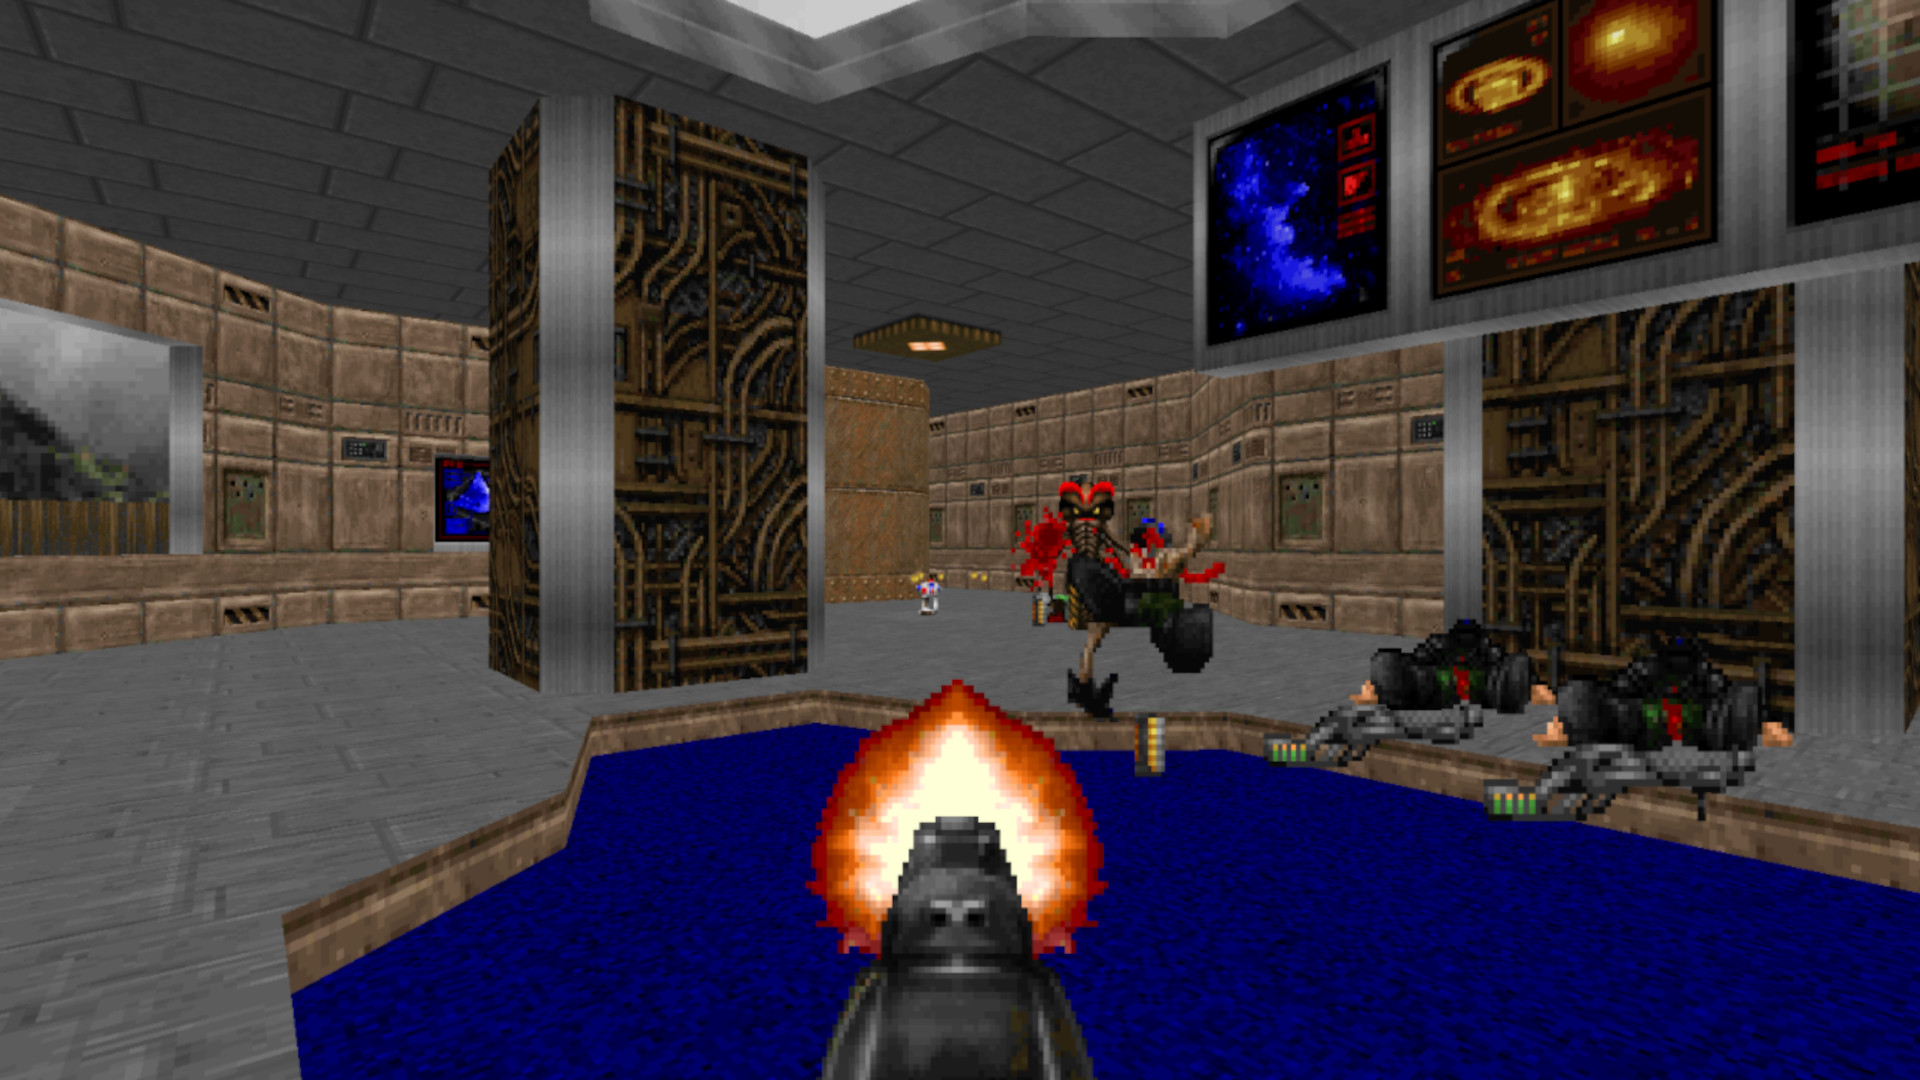 Doom is literally playing in this article